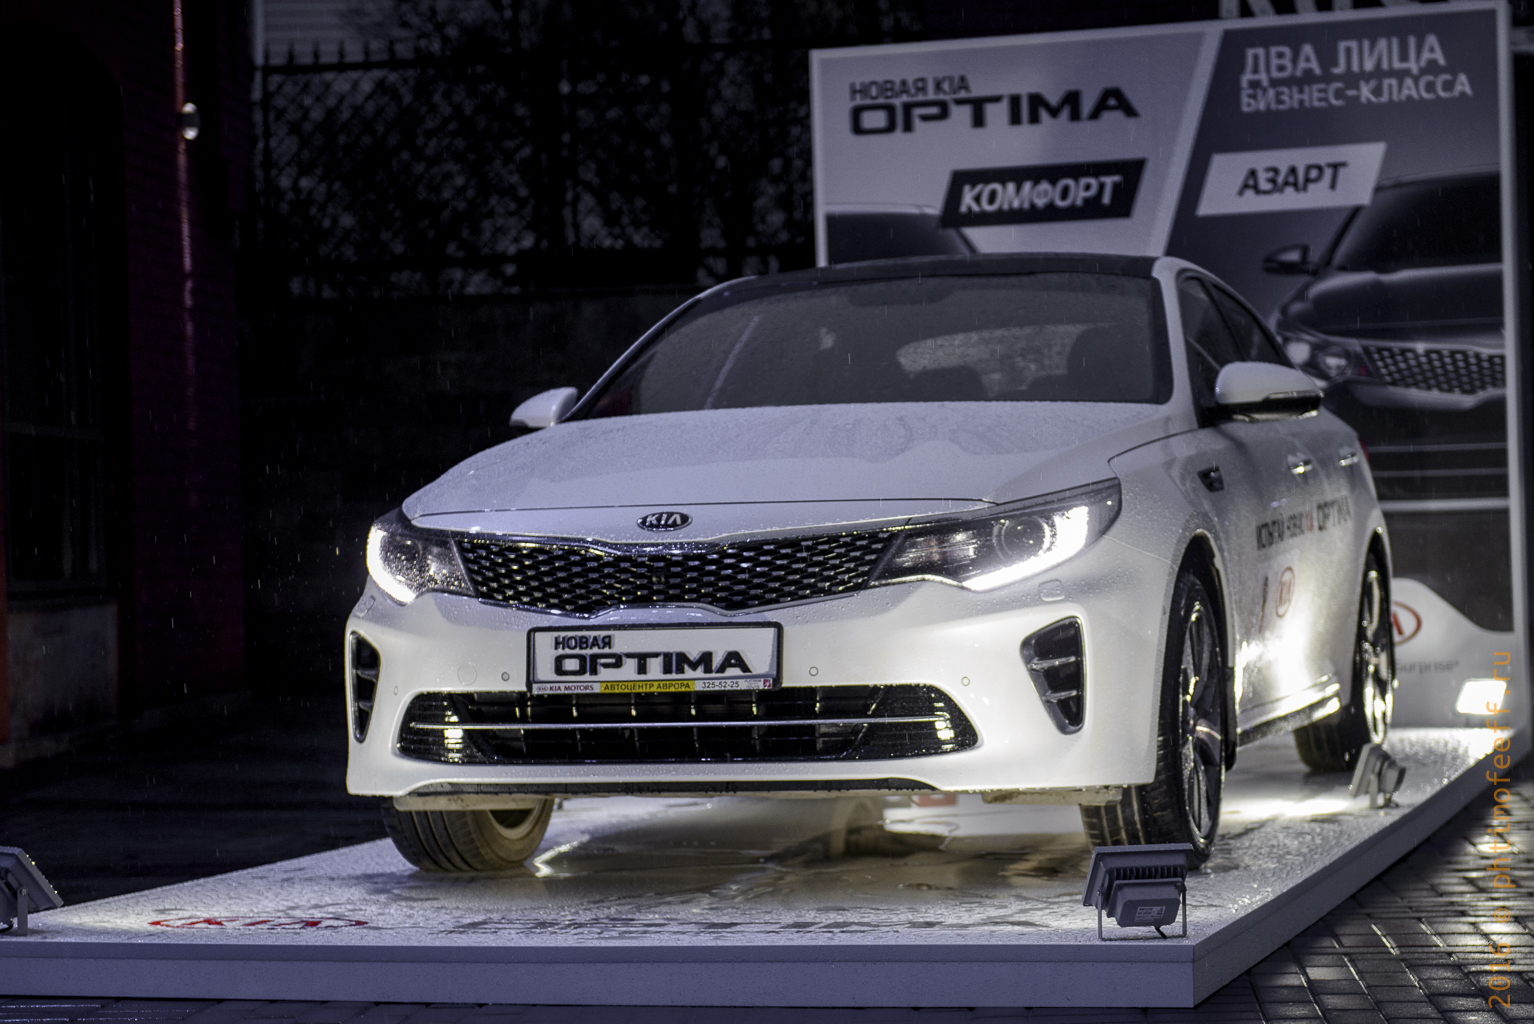 ™KIA, KIA Optima, презентация, новая модель, авто, автомобиль, седан, бизнес класс, КИА, КИА Оптима, ℠ДЦ Автоцентр Аврора, #CARetaInfo, 2016, автомобили, машина, ТС, ℠ДЦ Аларм-Моторс